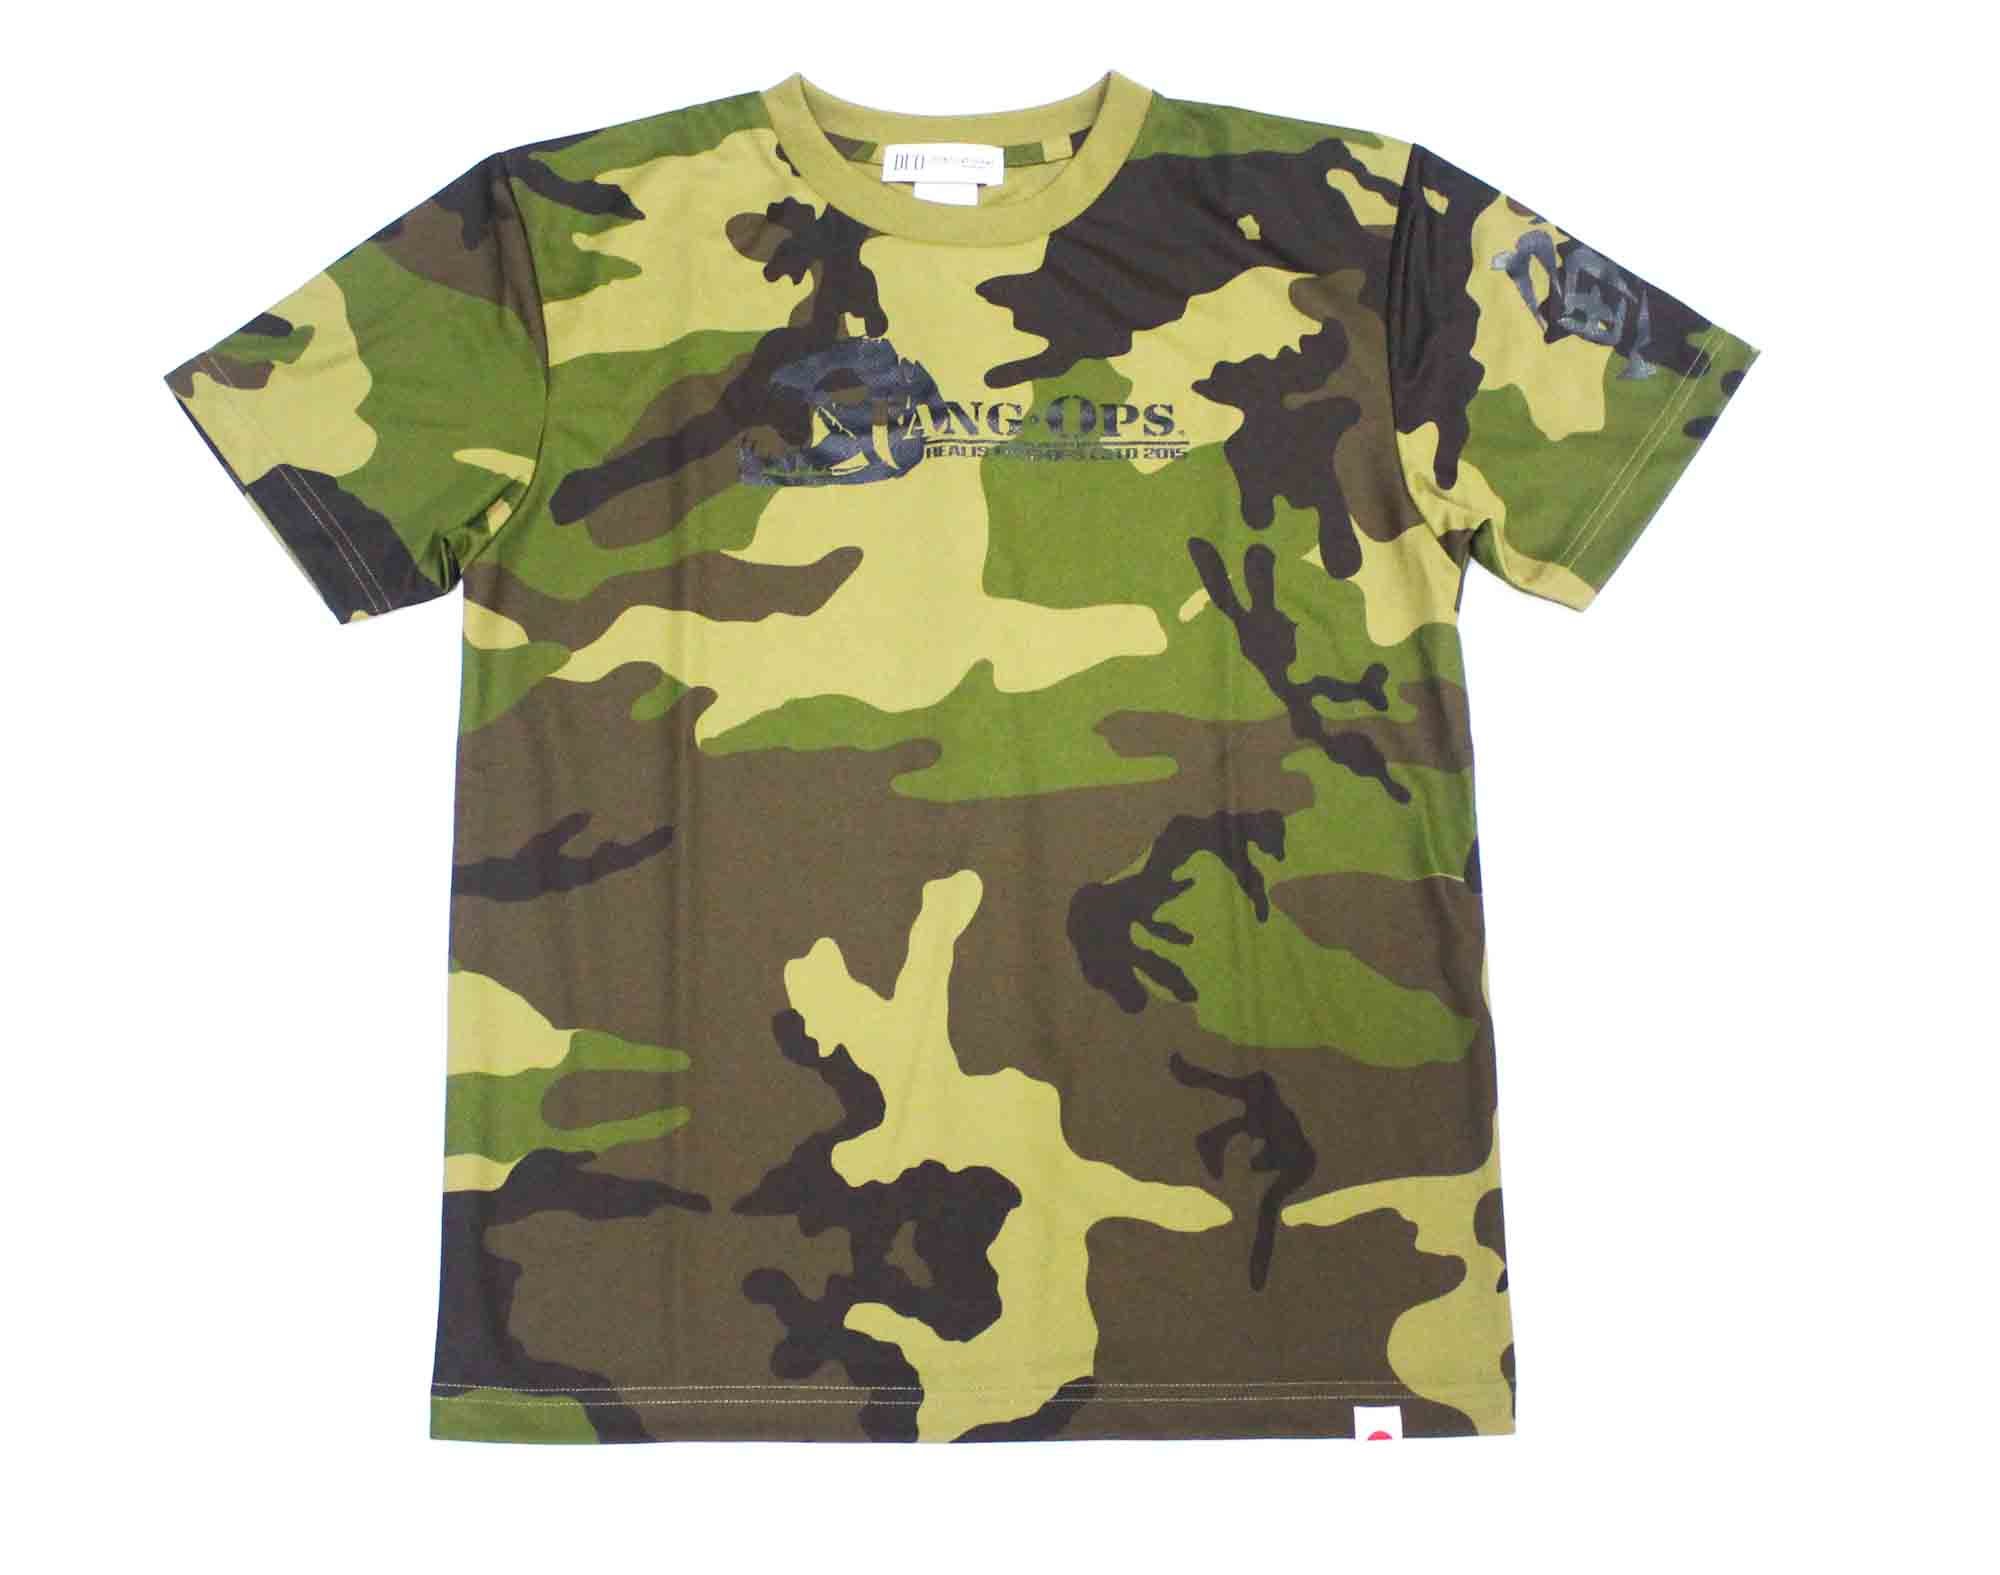 Duo T Shirt Fang Ops Beast Short Sleeve Dry Fit Camo Size M (1423)